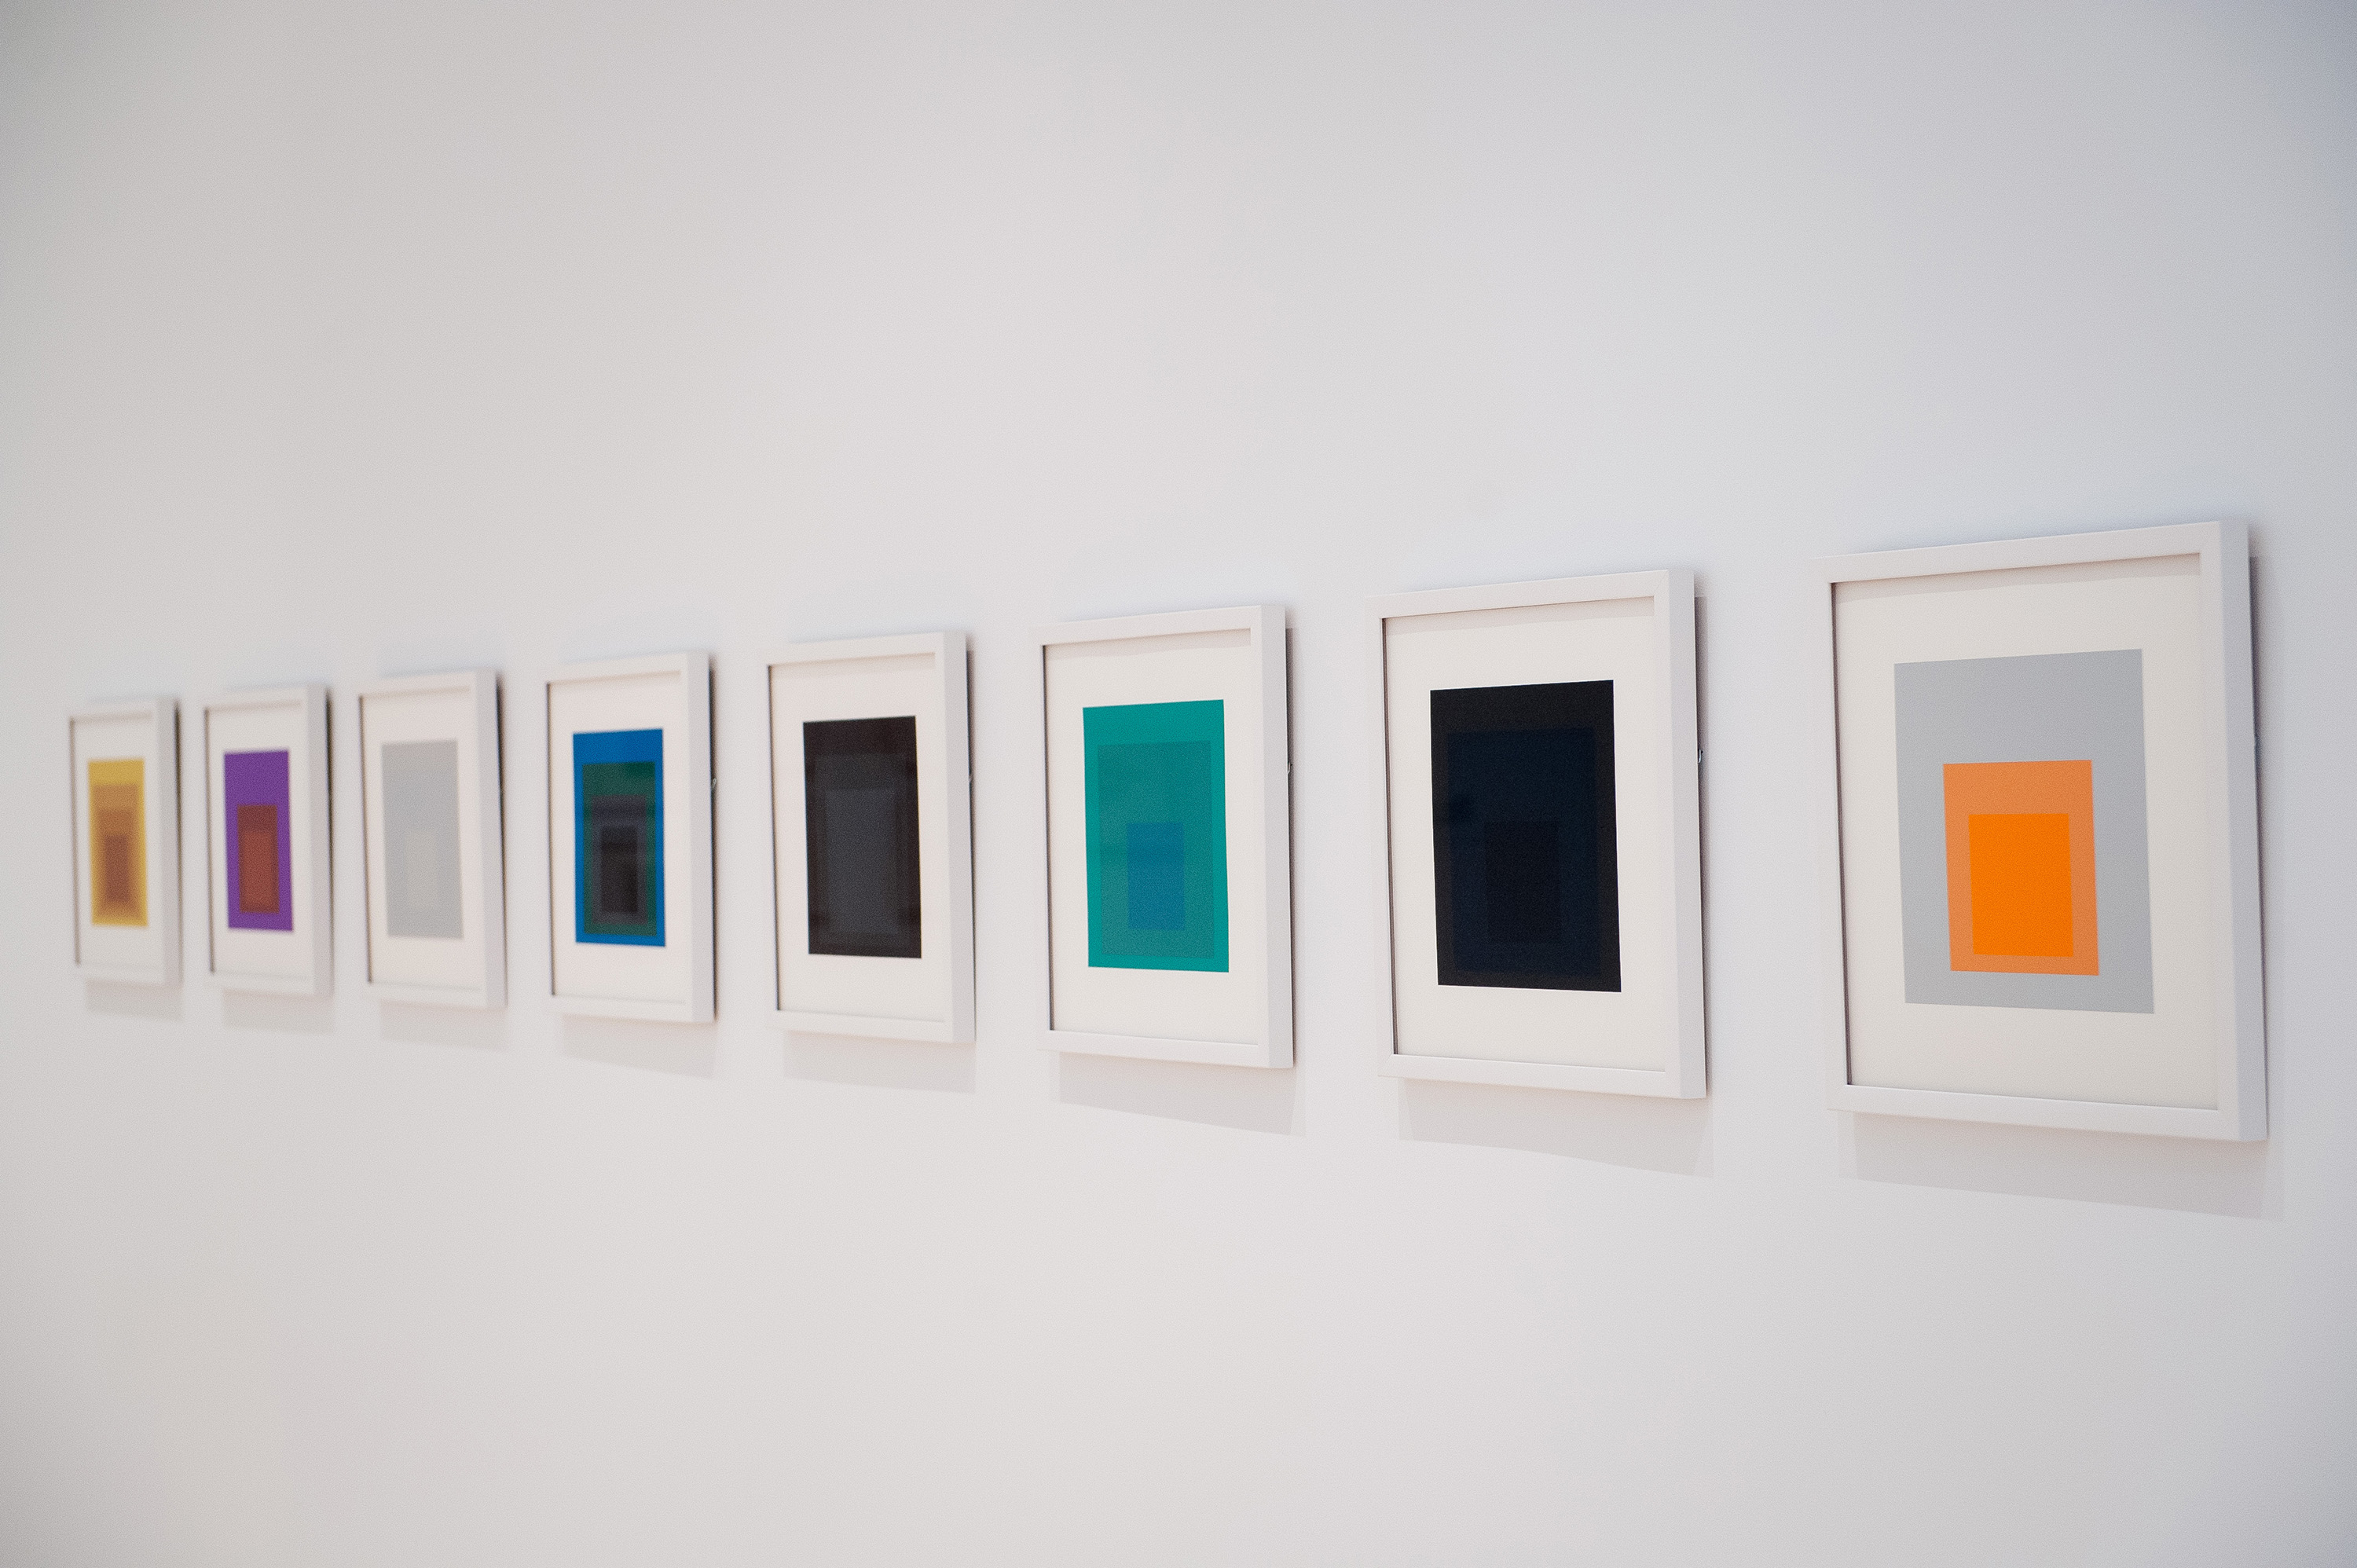 Josef Albers, <i>Homage to the Square</i>, Soft Edge, Hard Edge, 1965, installation view at the Eli and Edythe Broad Art Museum at Michigan State University, 2013. Eli and Edythe Broad Art Museum, Gift of Dr. Neil J. Farkas in memory of his father Boris Farkas. Photo: Trumpie Photography